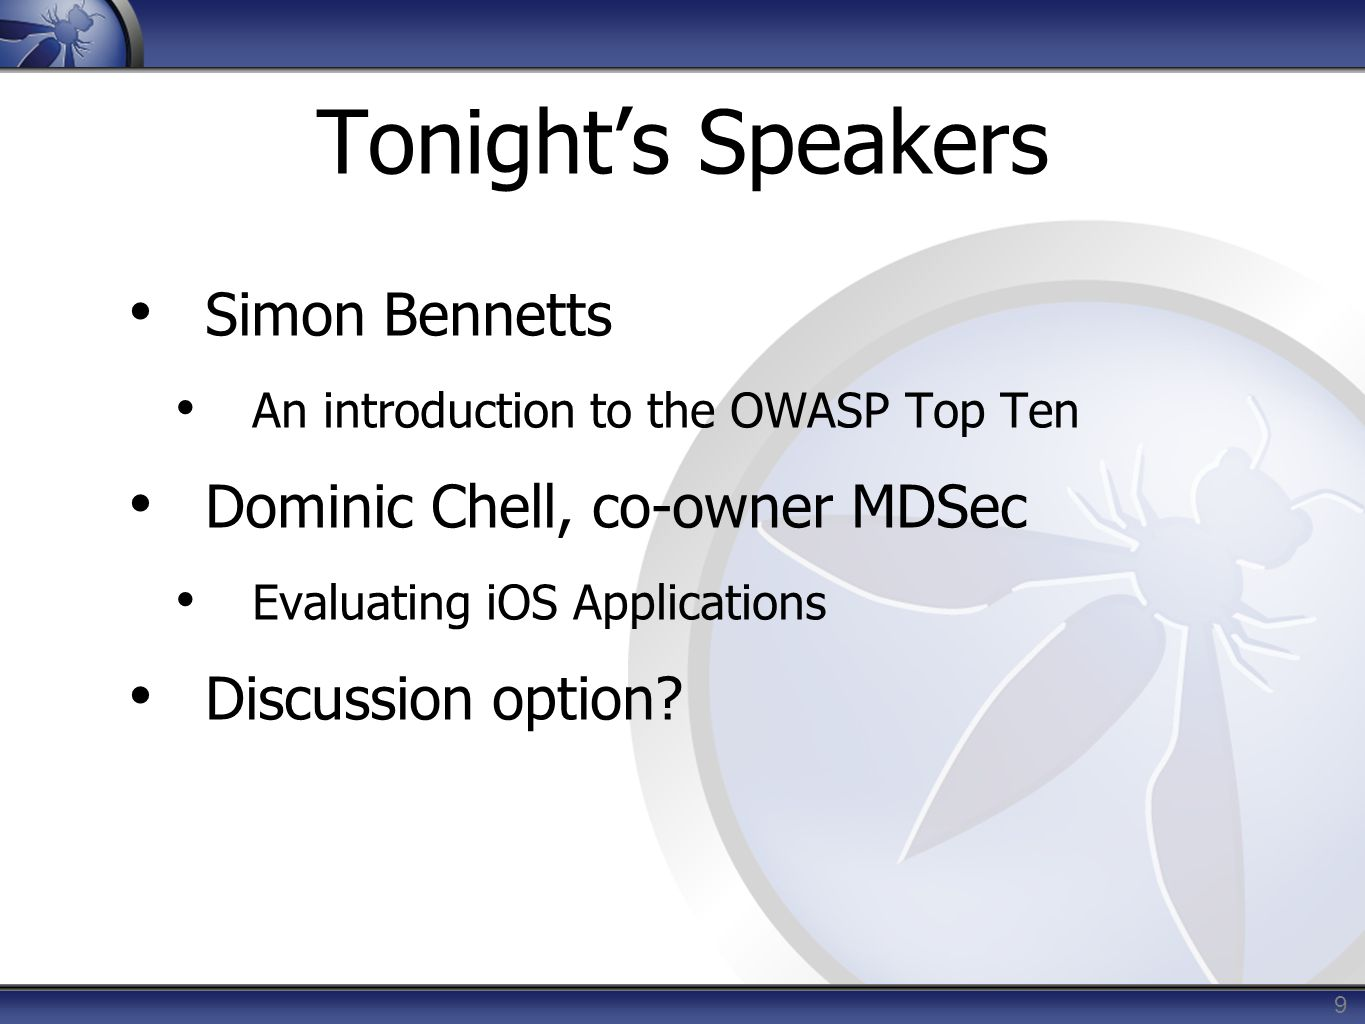 9 Tonight's Speakers Simon Bennetts An introduction to the OWASP Top Ten Dominic Chell, co-owner MDSec Evaluating iOS Applications Discussion option